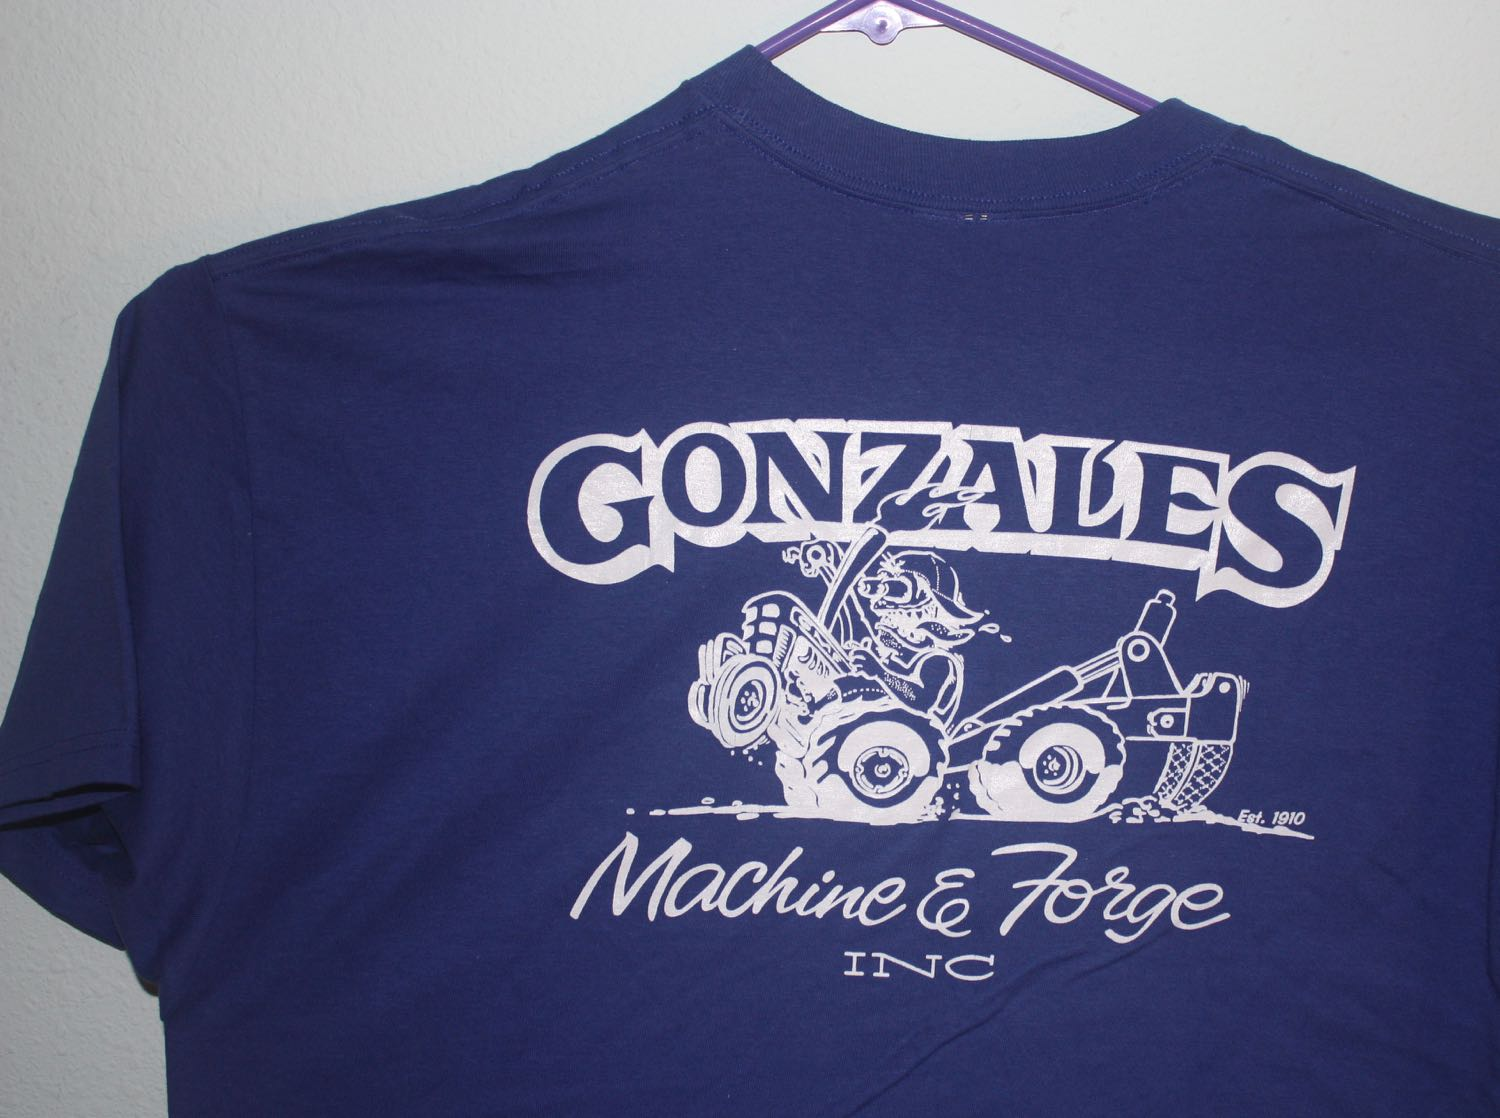 Gonzales Machine and Forge Ed Roth Homage Tee